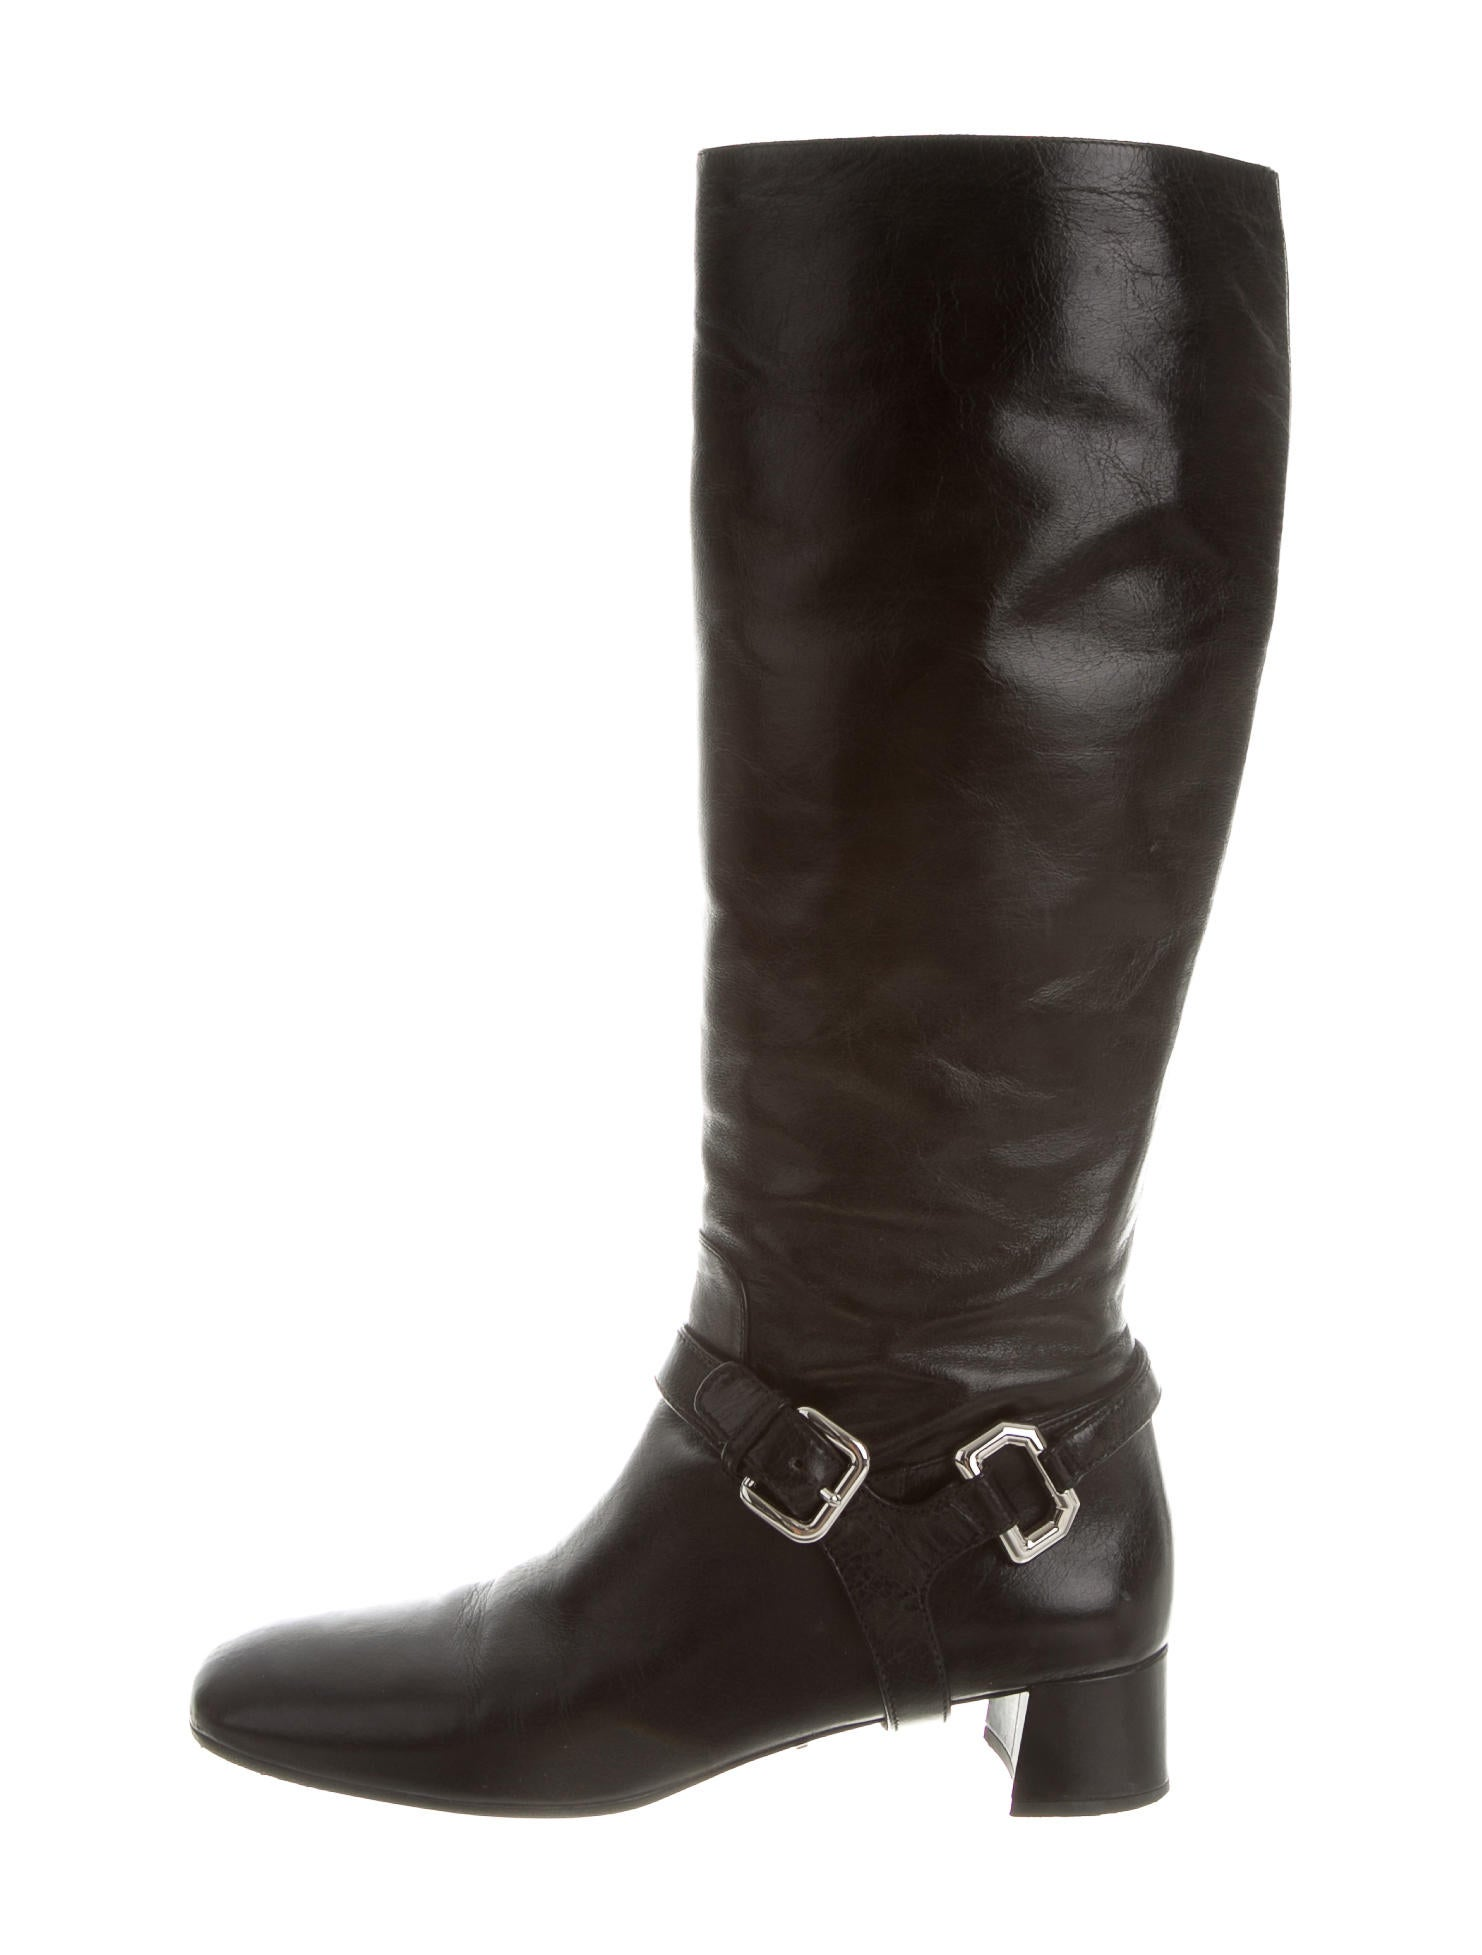 prada leather knee high boots shoes pra110021 the